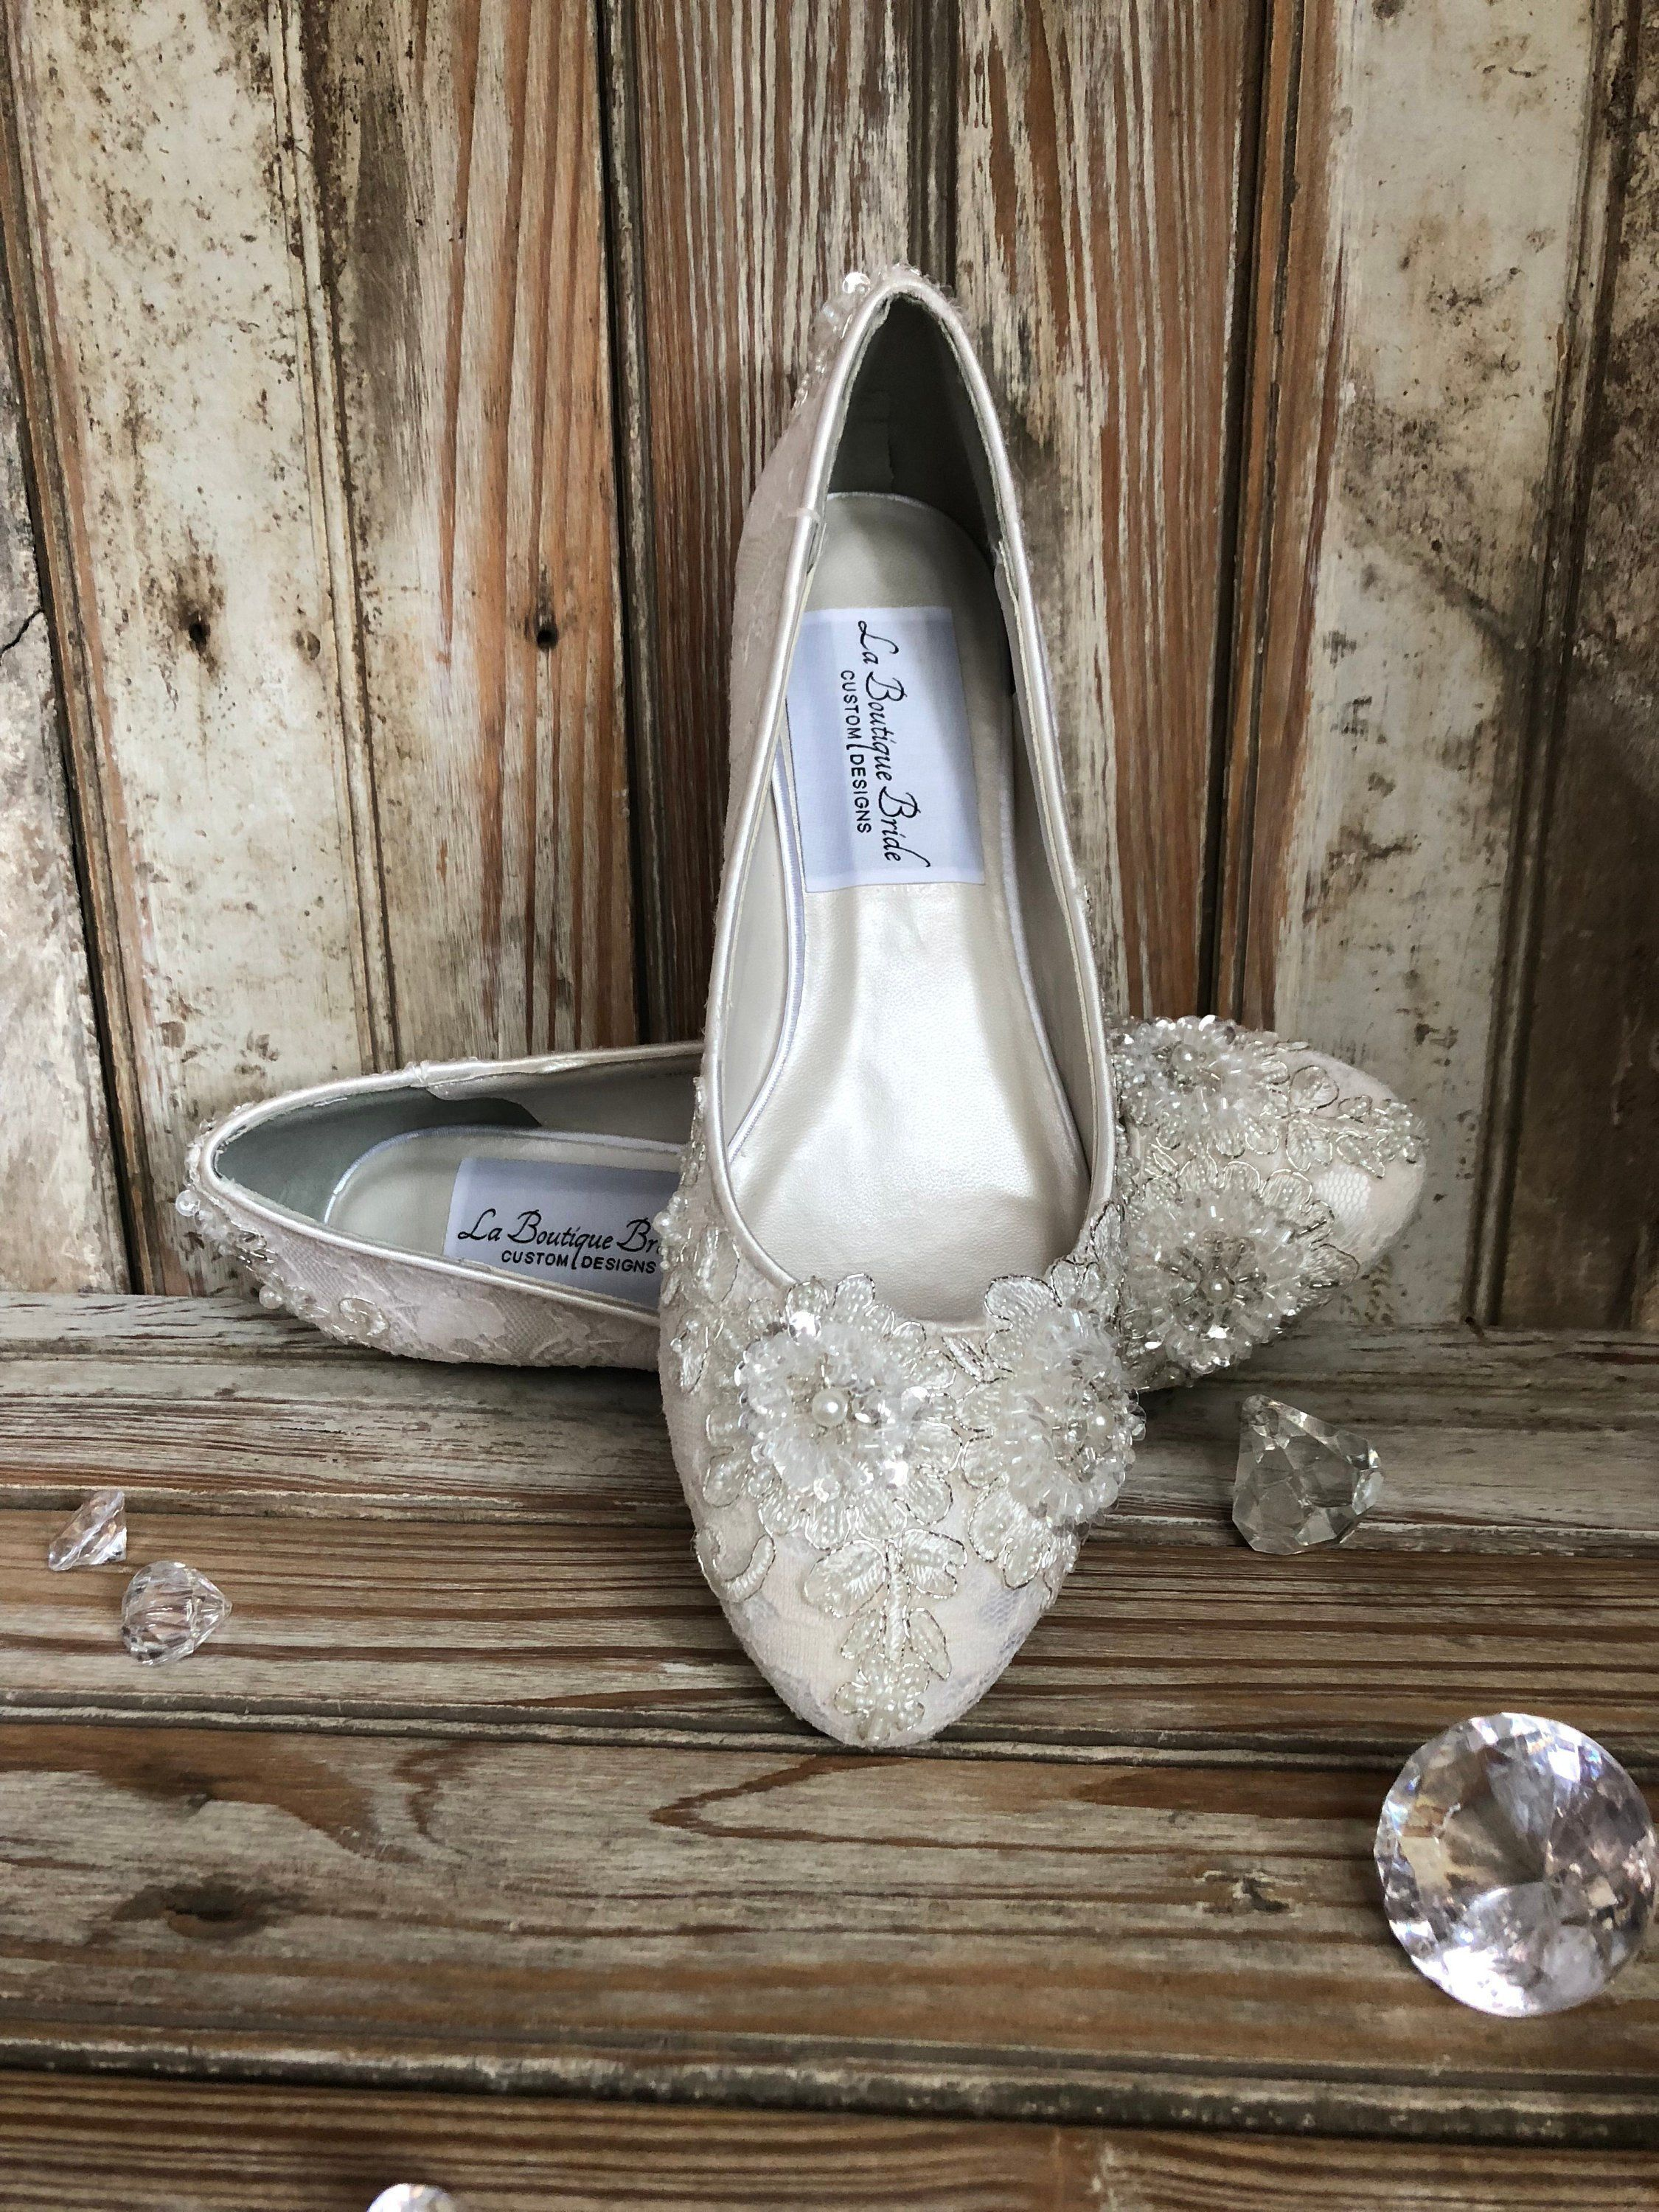 Bridal Lace Closed Toe Flat 1 2 Inch Heel Lace Beaded Lace Embellished Silver Thread Closed Toe Pump Bridal Shoes Flats Peep Toe Wedding Shoes Closed Toe Pumps